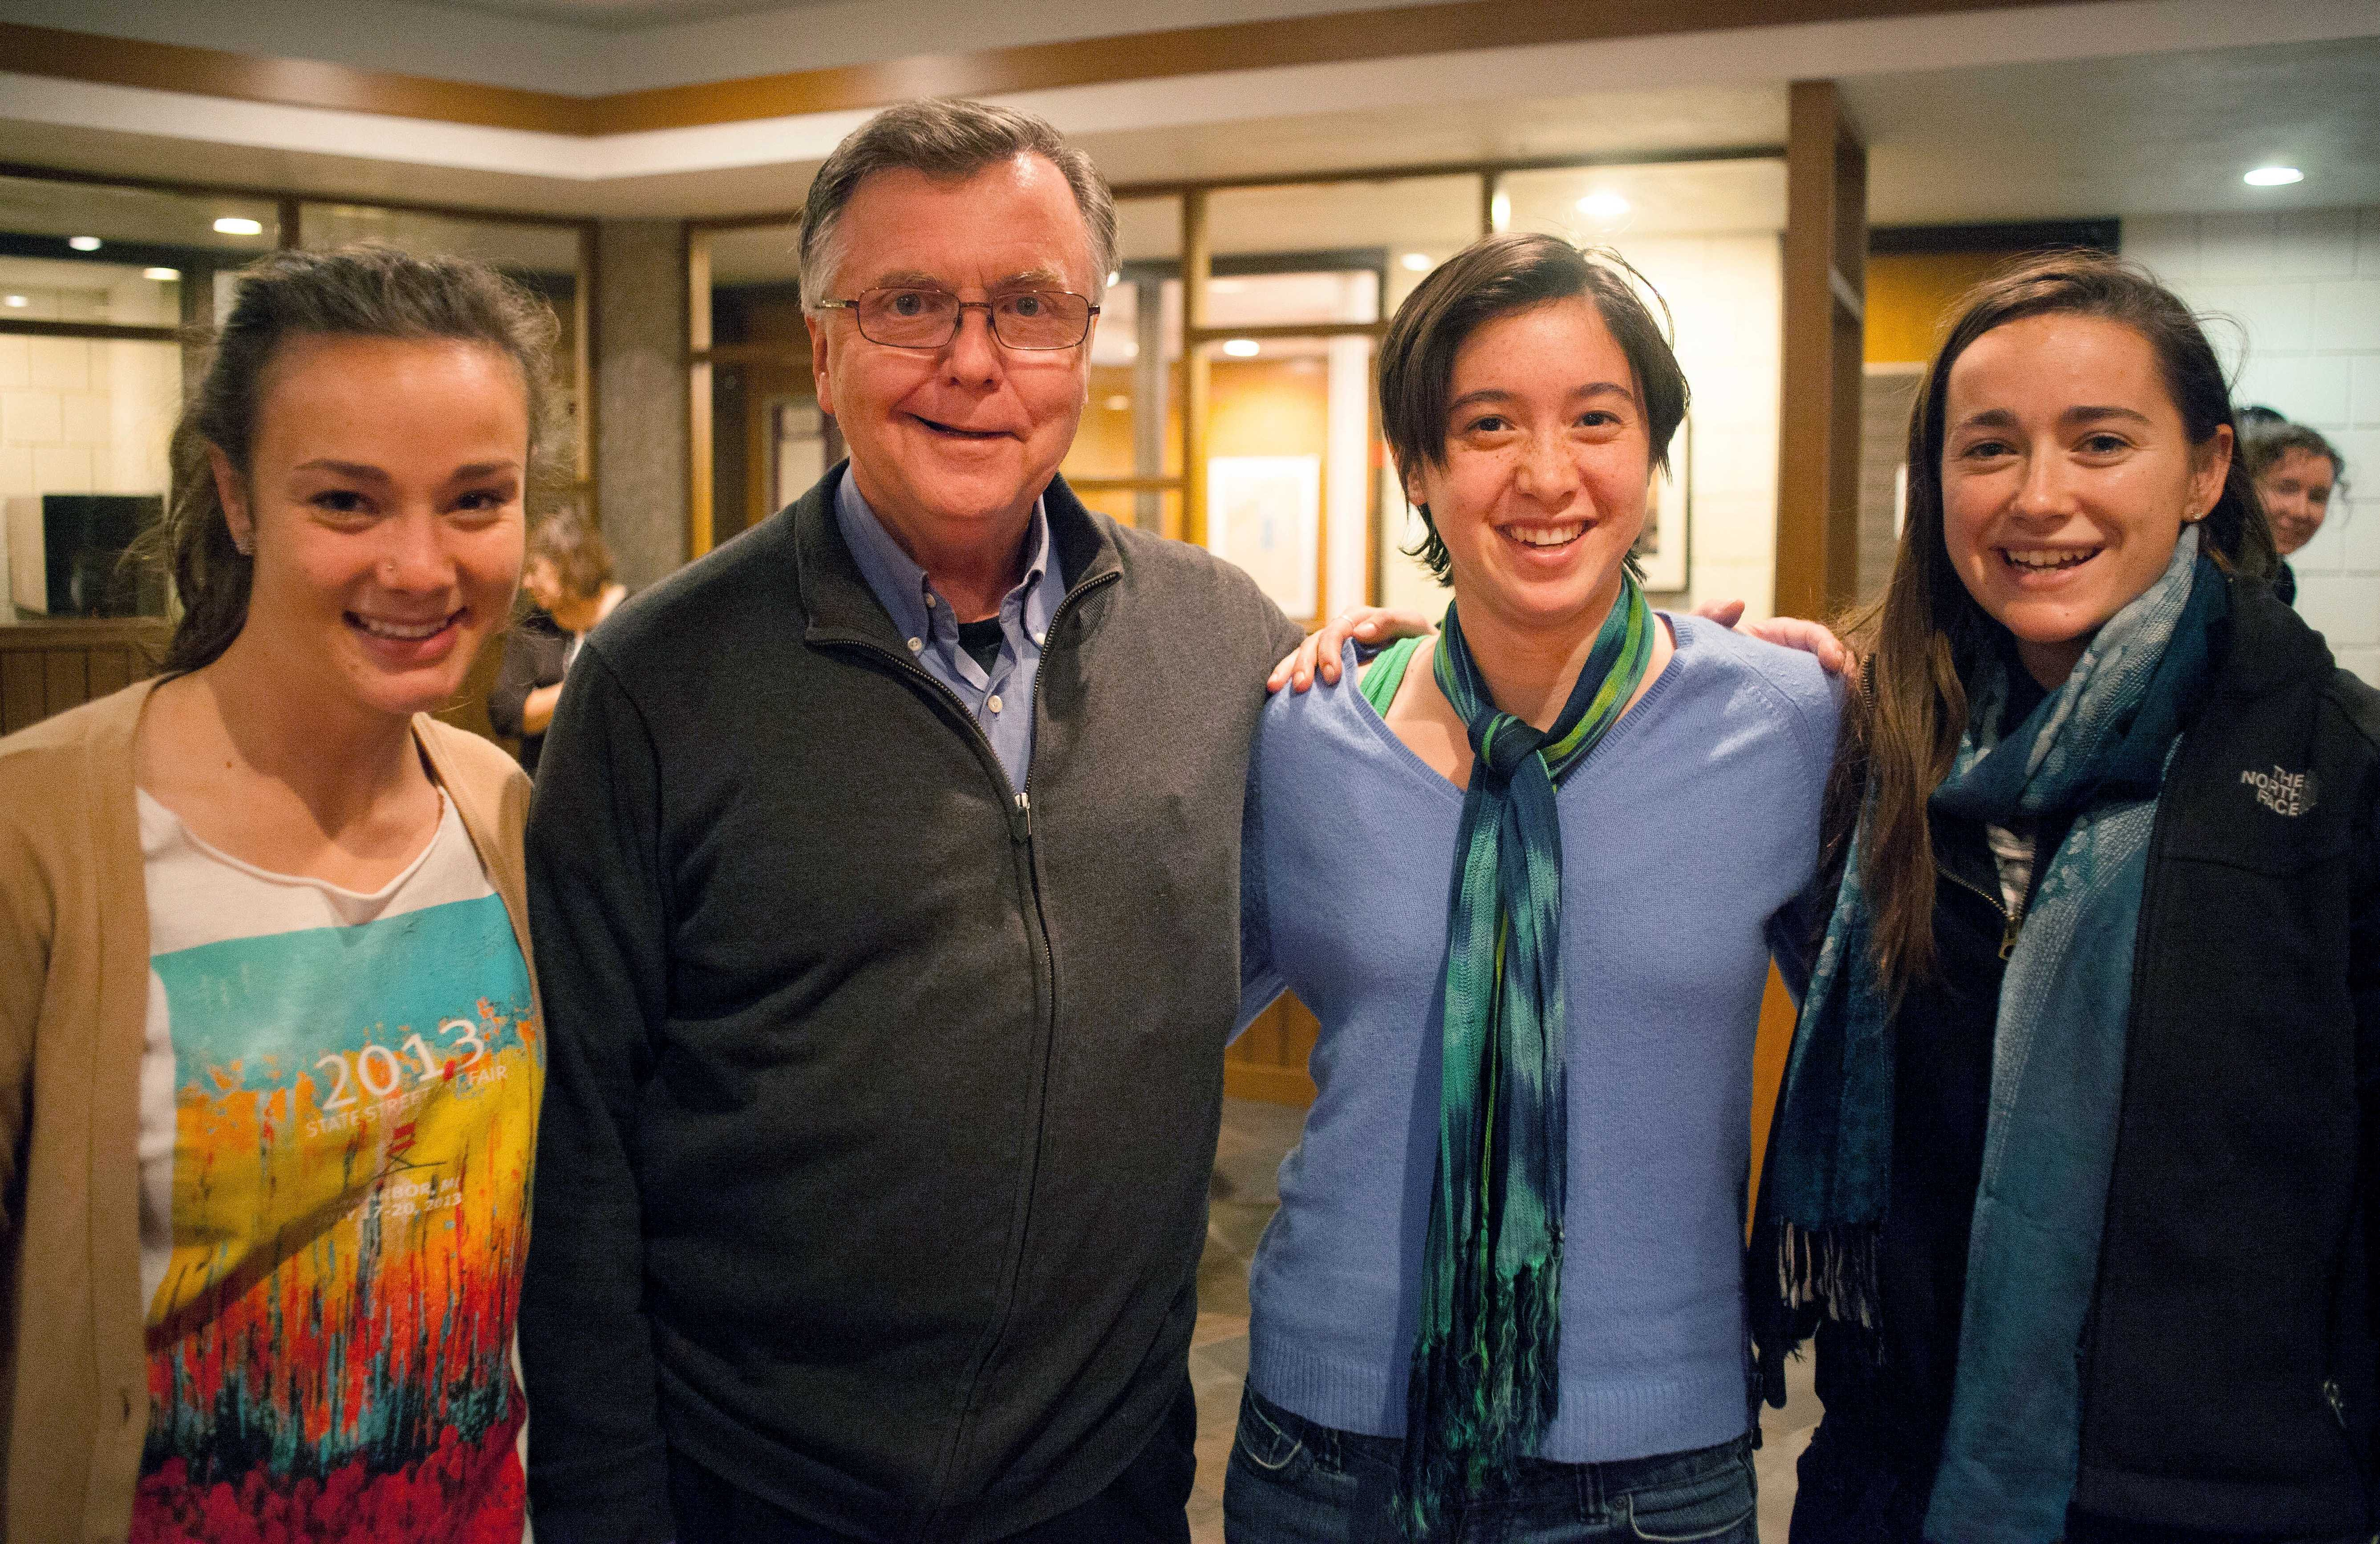 From left: Caroline Wright '16, Fr. Bob O'Donnell, CSP, Caitlin Toner '15, and Ellen Brady '15 at a farewell reception for O'Donnell, held Tuesday in the CRSL. O'Donnell was reassigned over the summer.